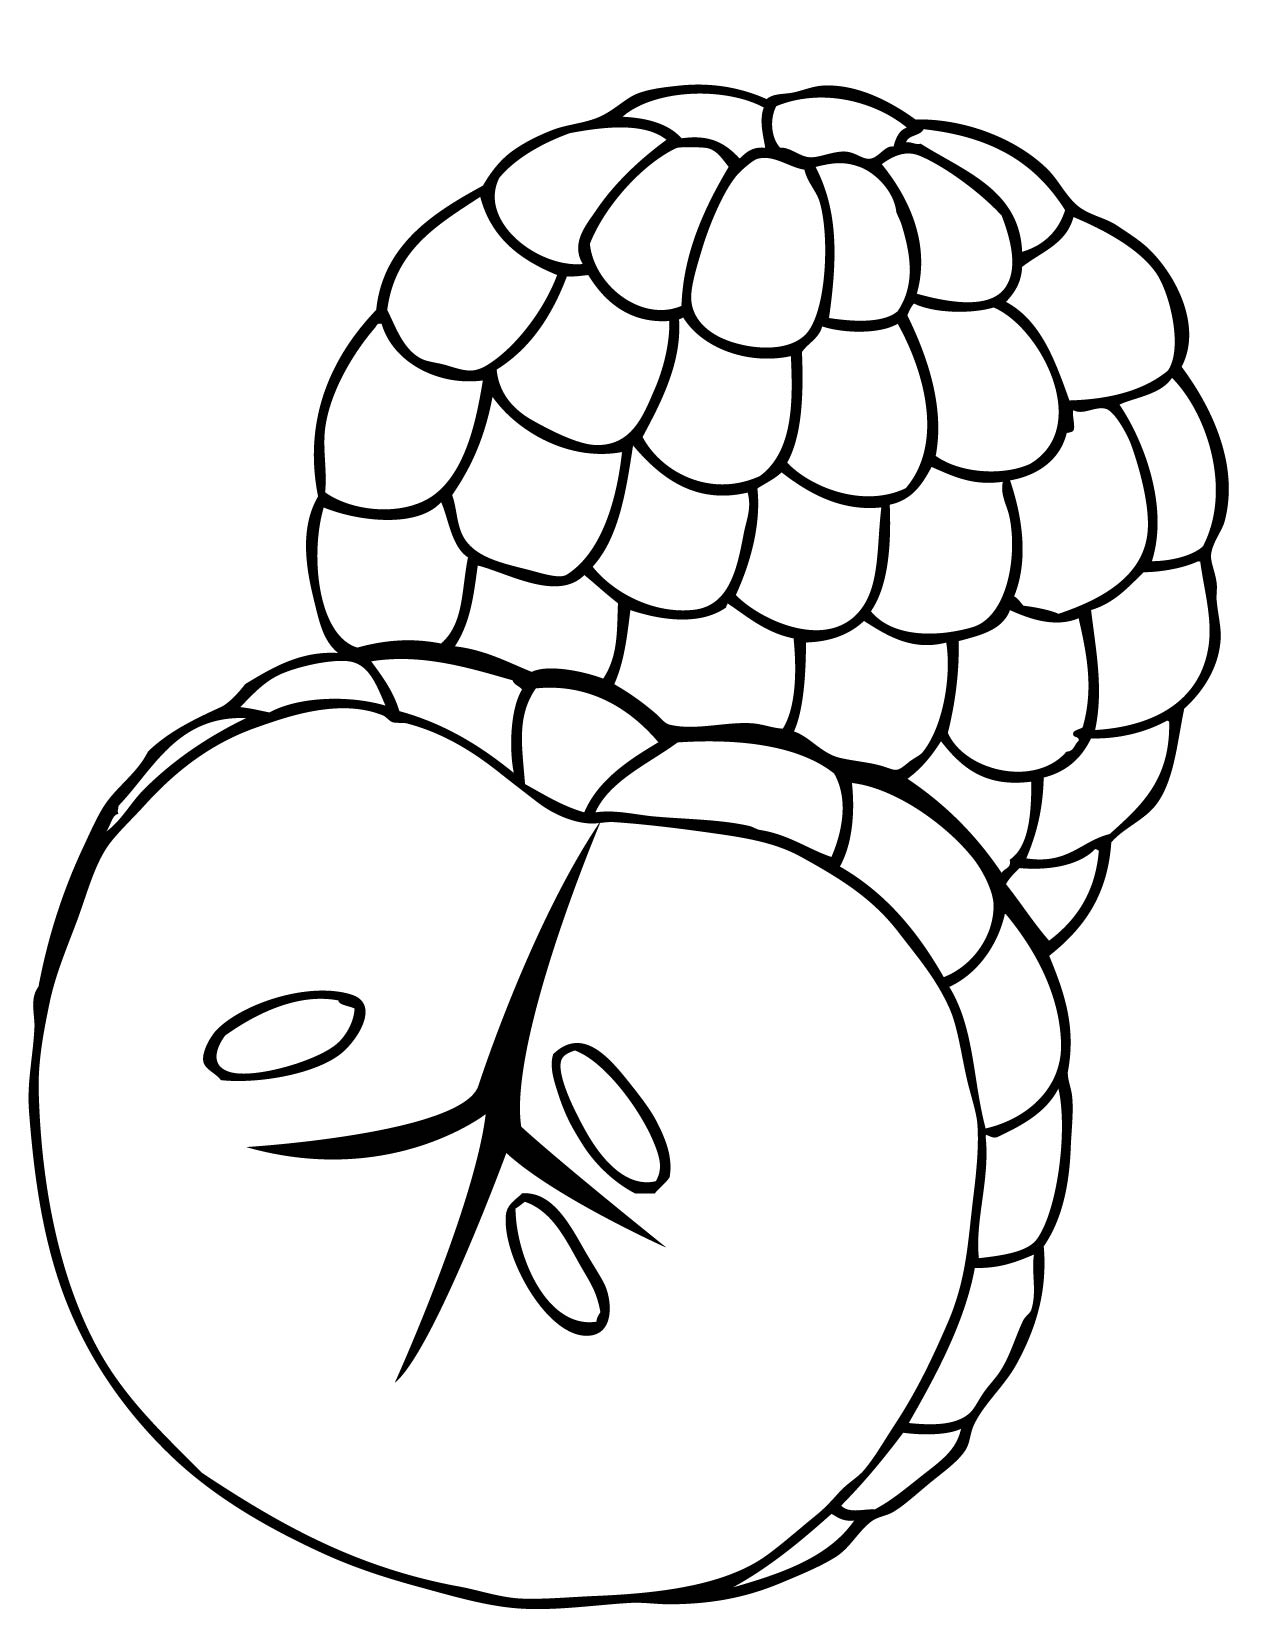 1275x1650 Inspiring Ideas Fruits Coloring Pages Kiwi Fruit Page Free